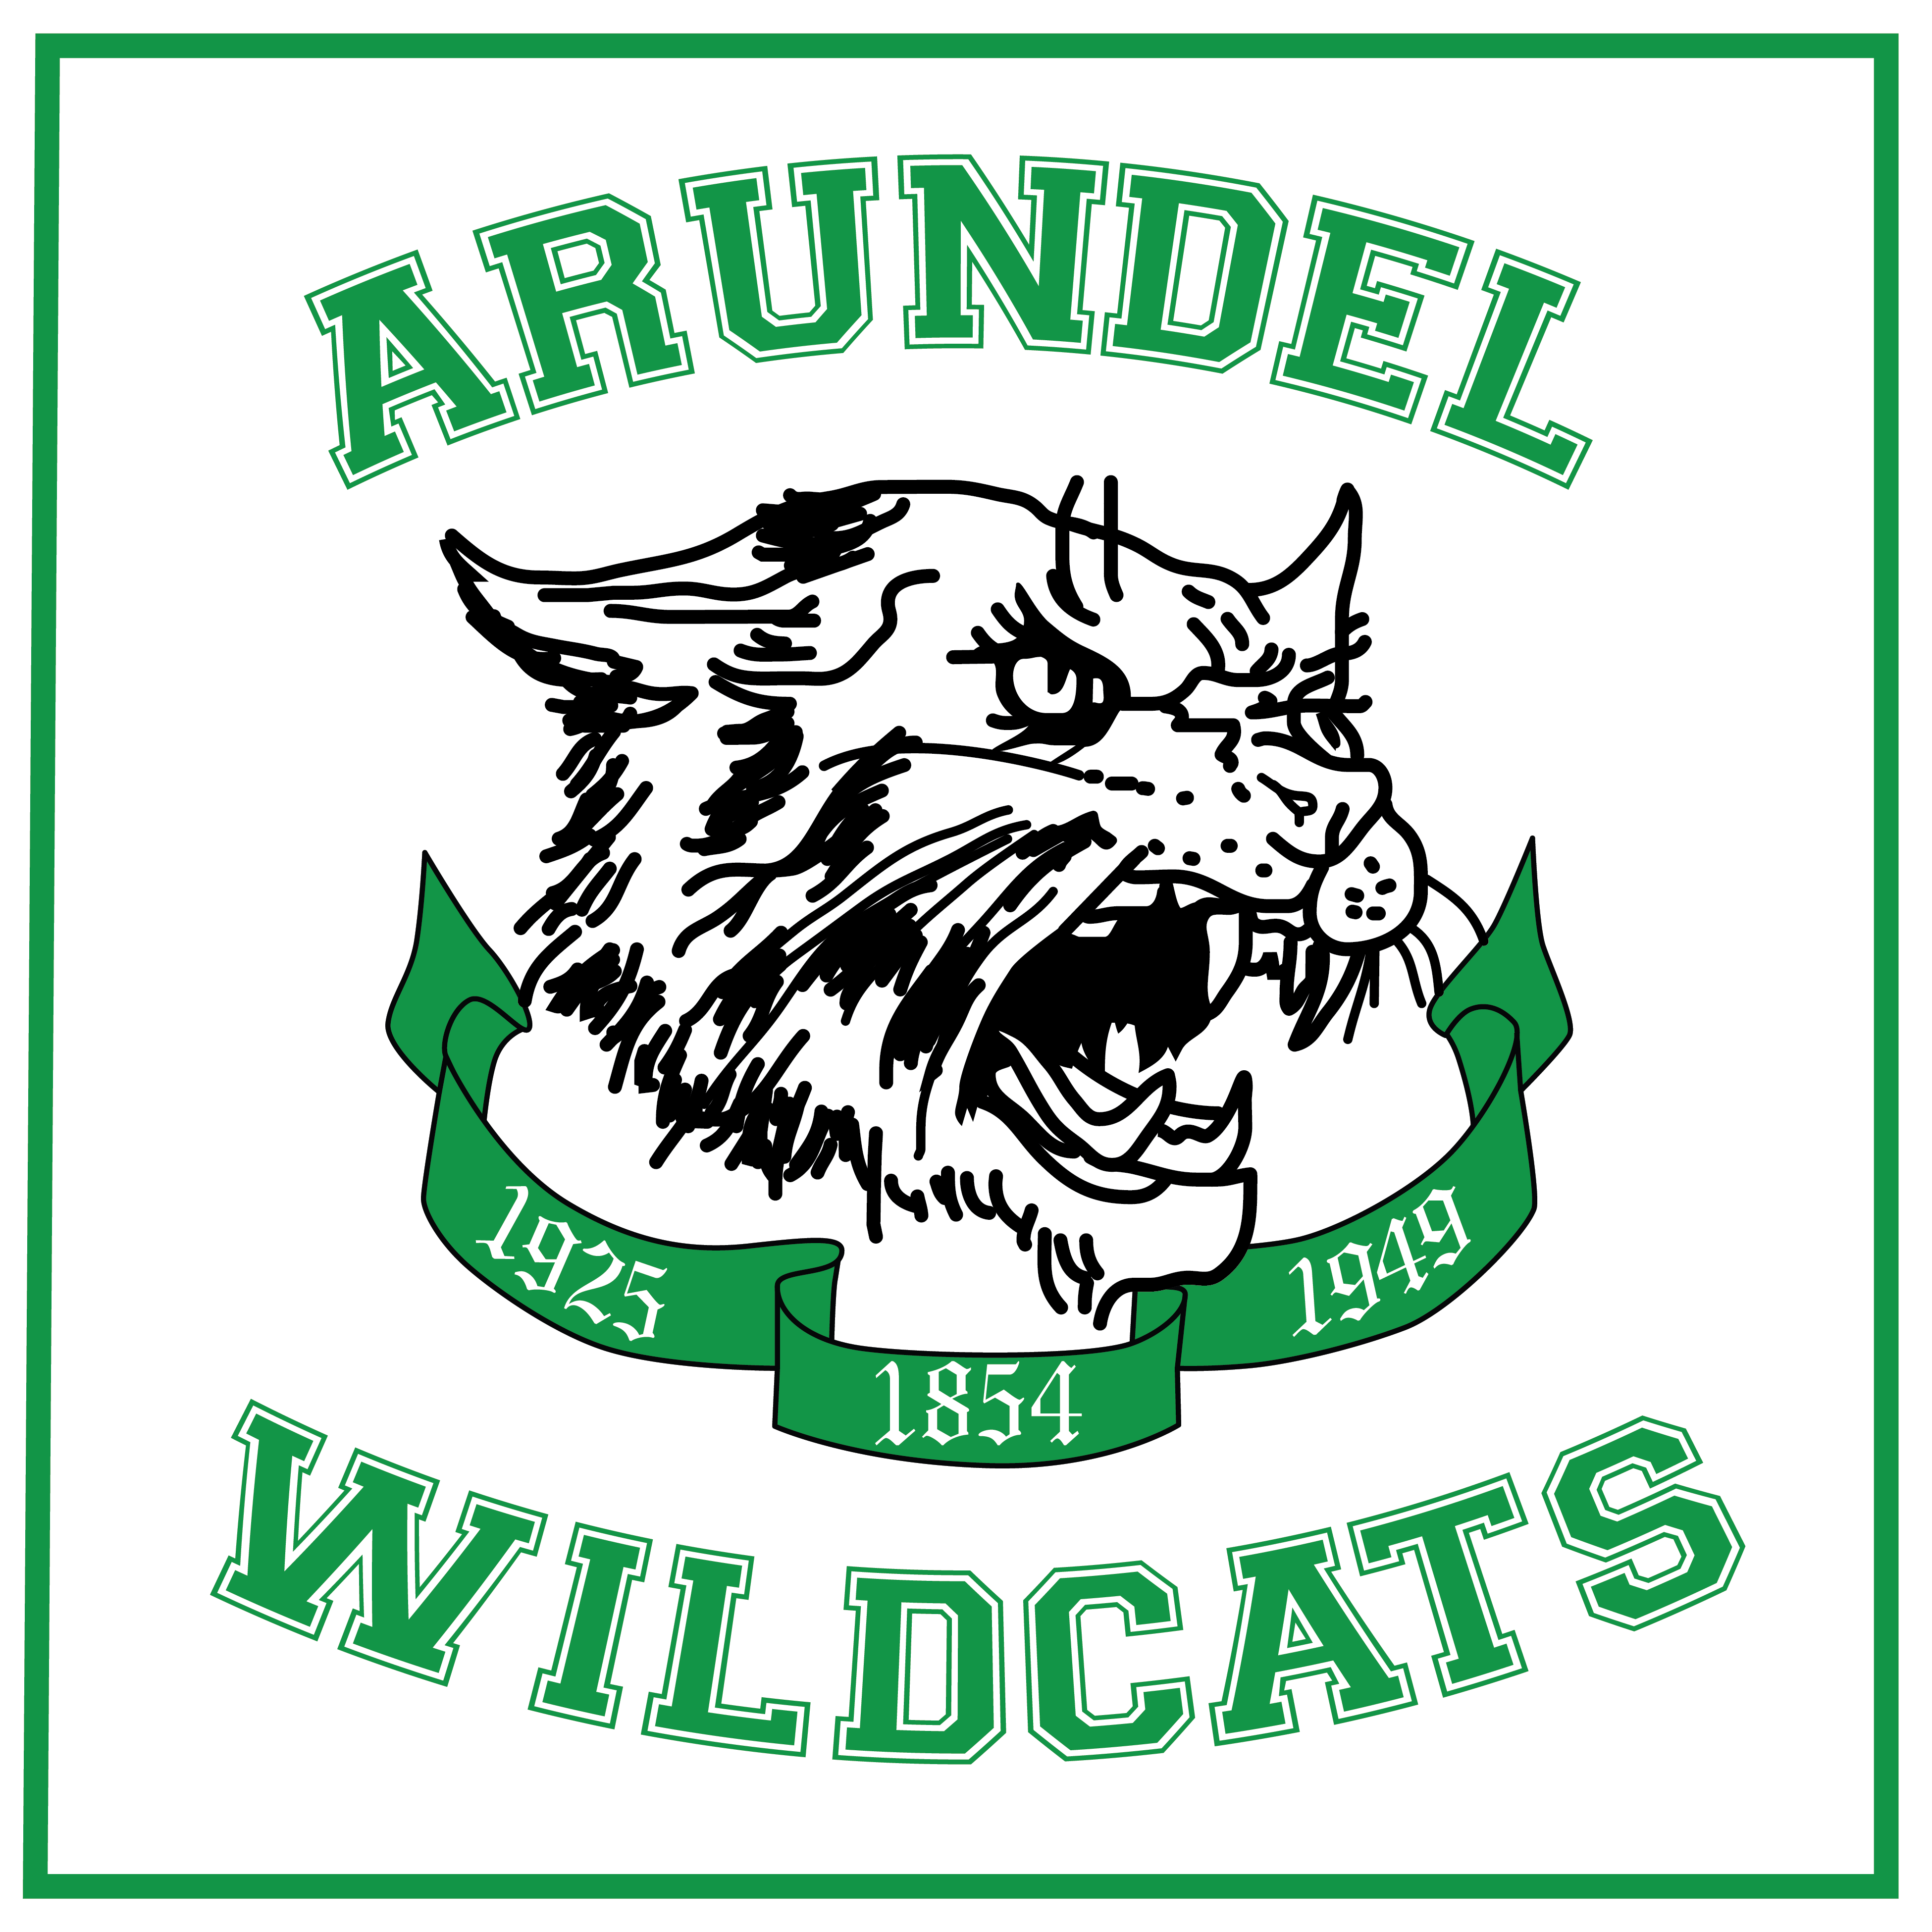 Support Arundel Boys Soccer's Fight Against Addiction and Homelessness